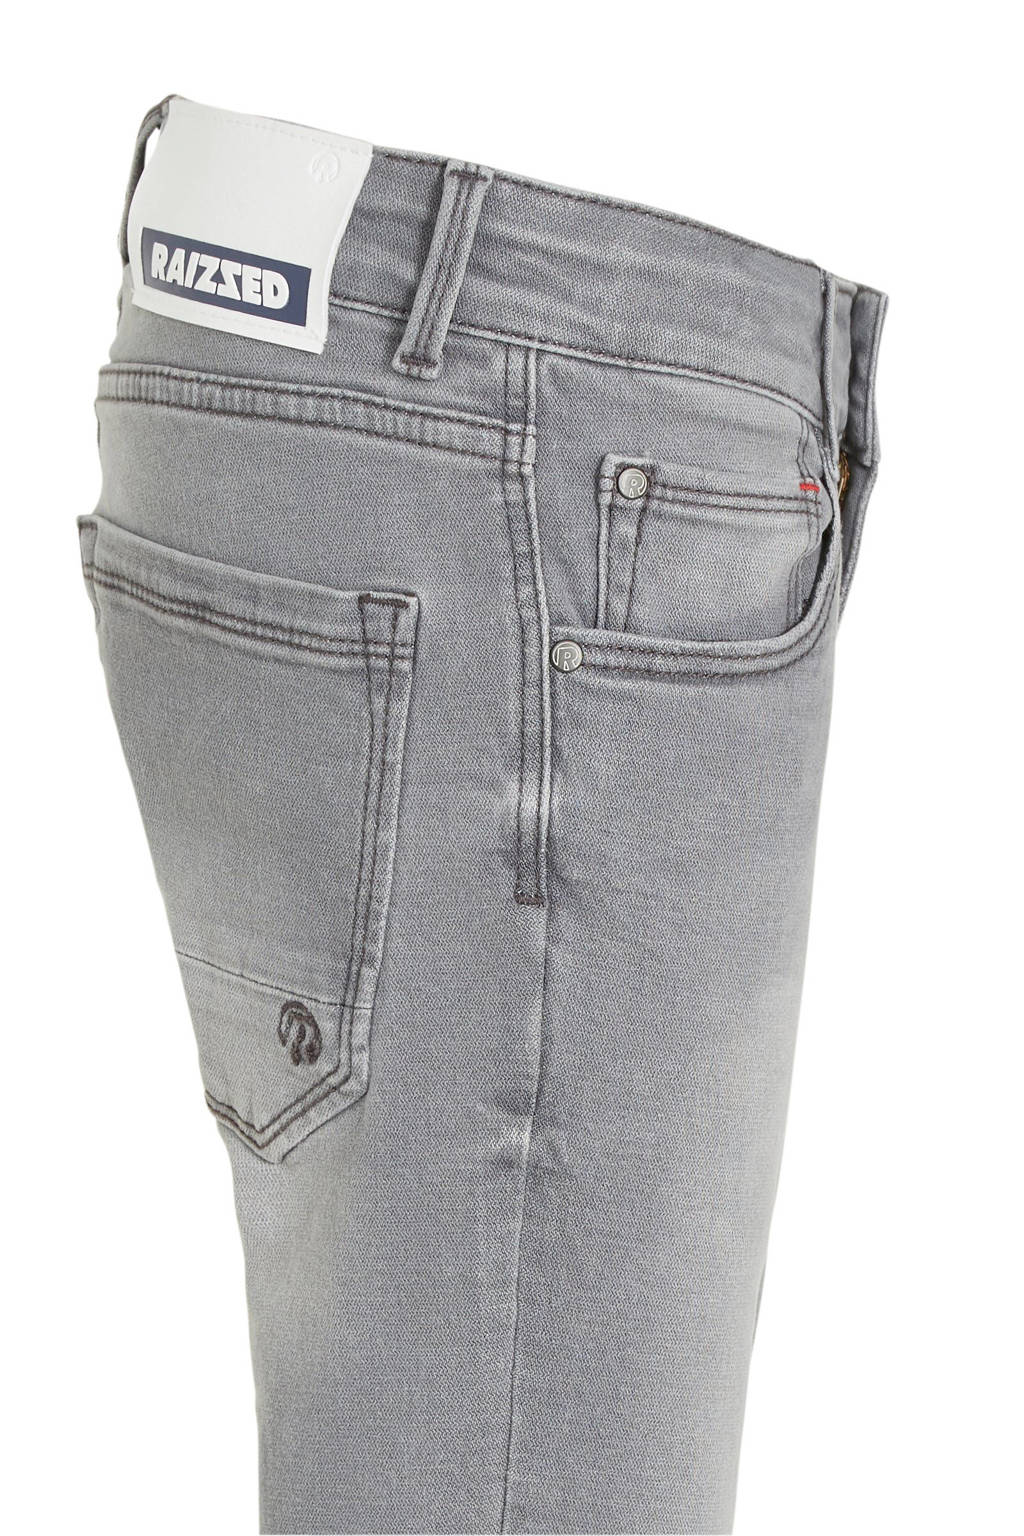 Raizzed slim fit jeans Boston grijs stonewashed, Grijs stonewashed